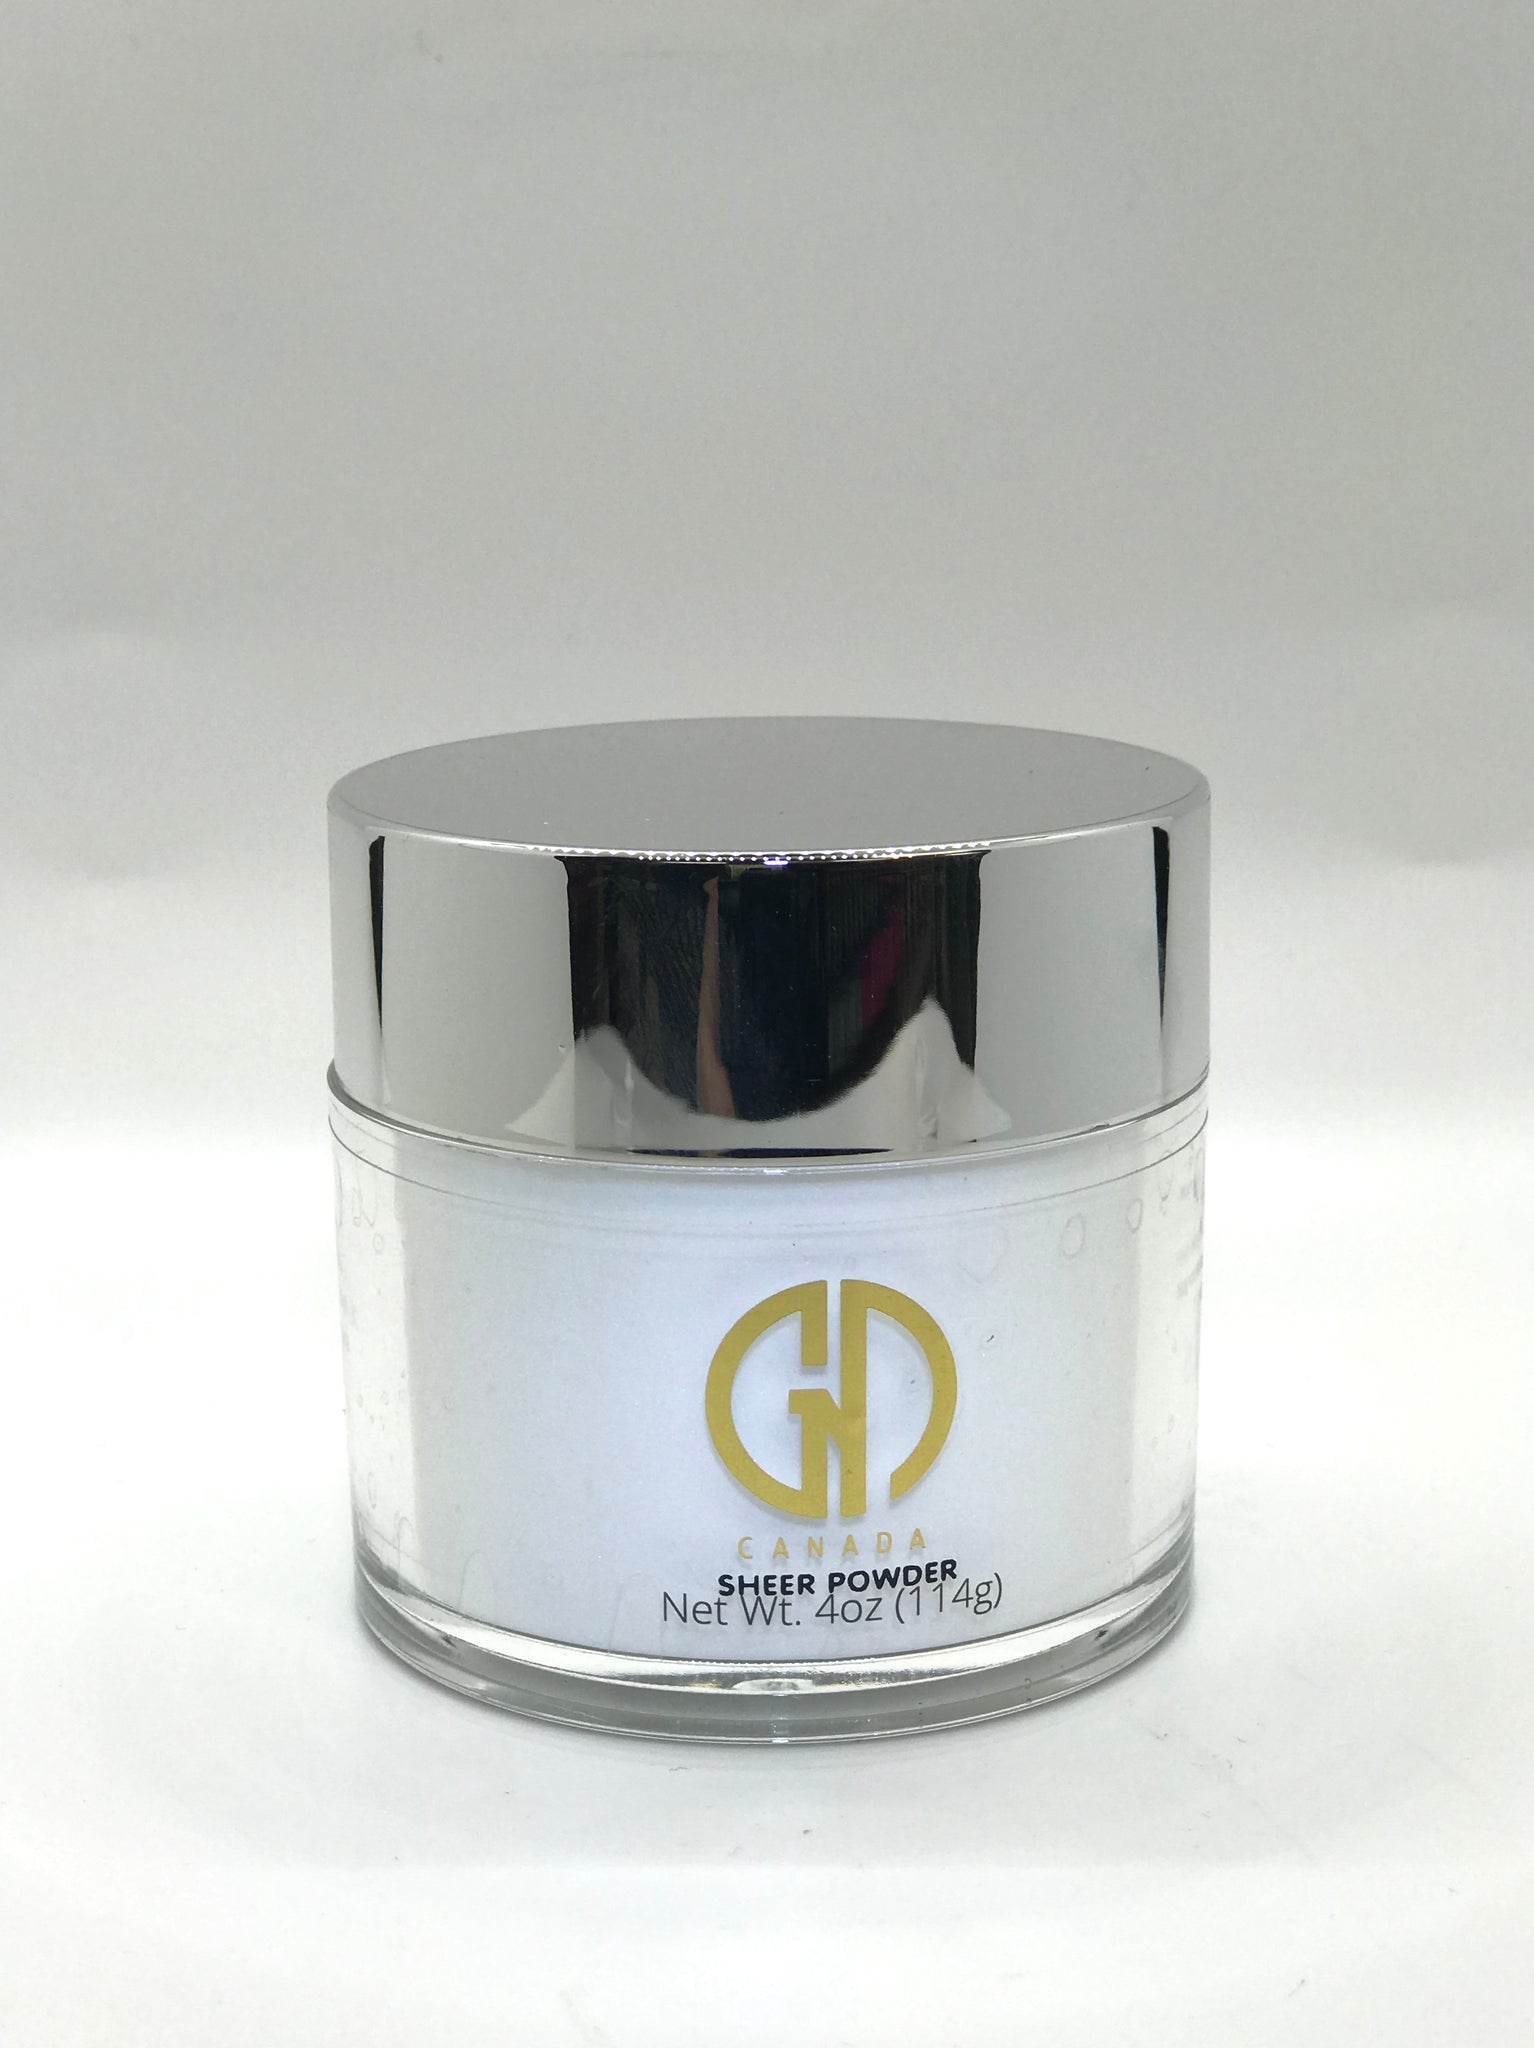 2-in-1 Acrylic Sheer Powder (4 oz) | GND Canada® - CM Nails & Beauty Supply